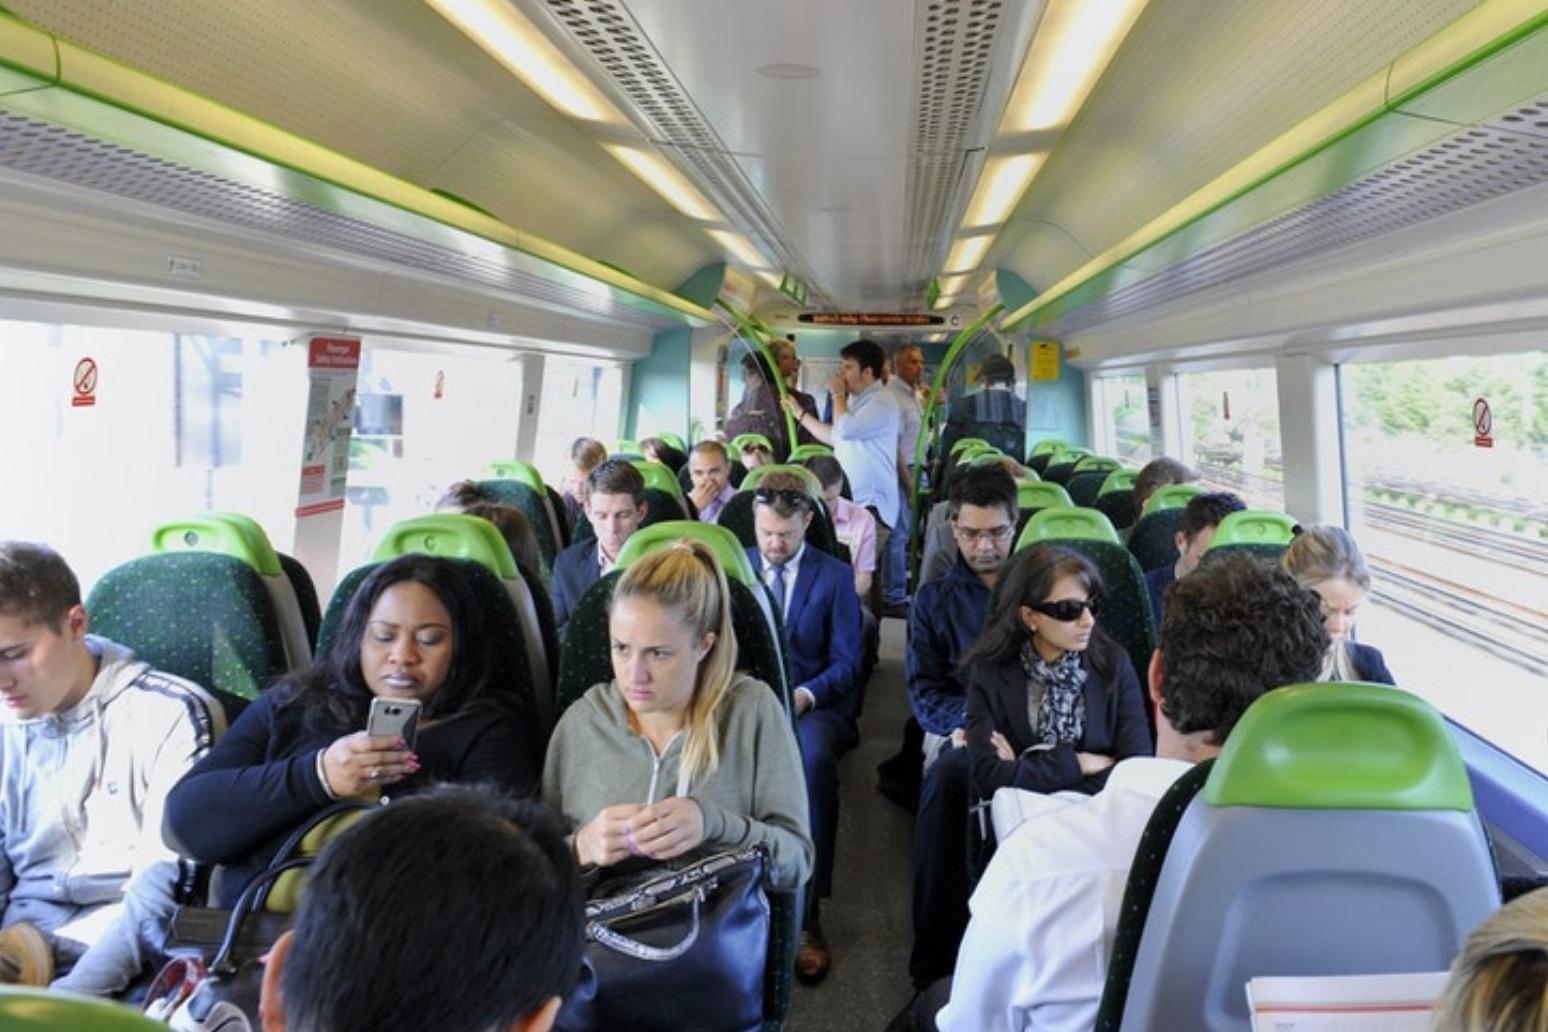 Examples of 2021 rail fare rises